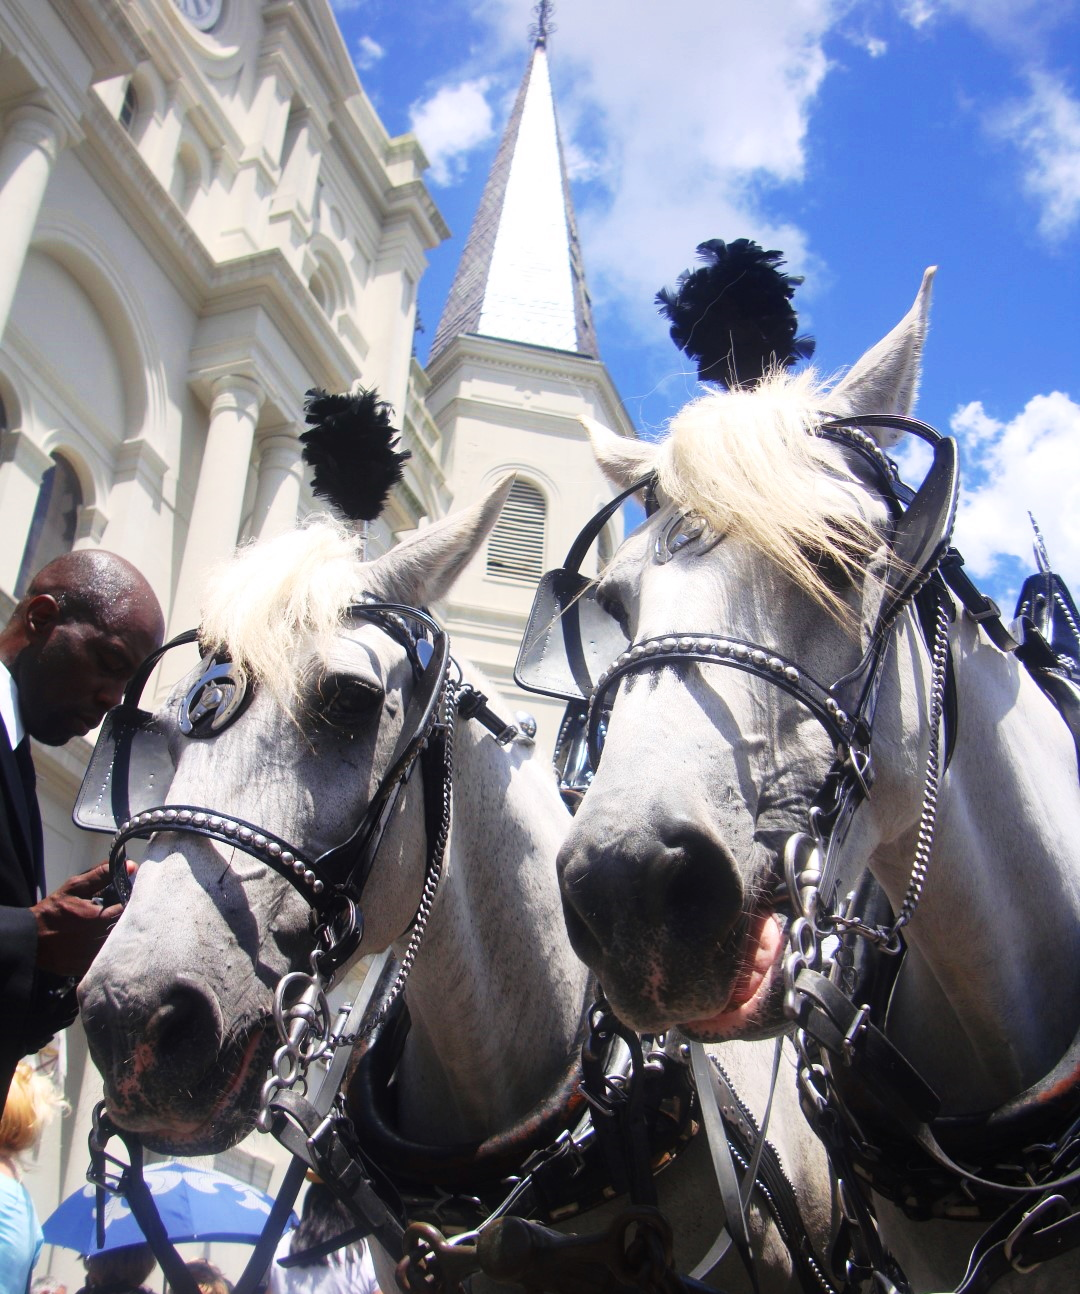 Scenes From Pete Fountain's Funeral In New Orleans